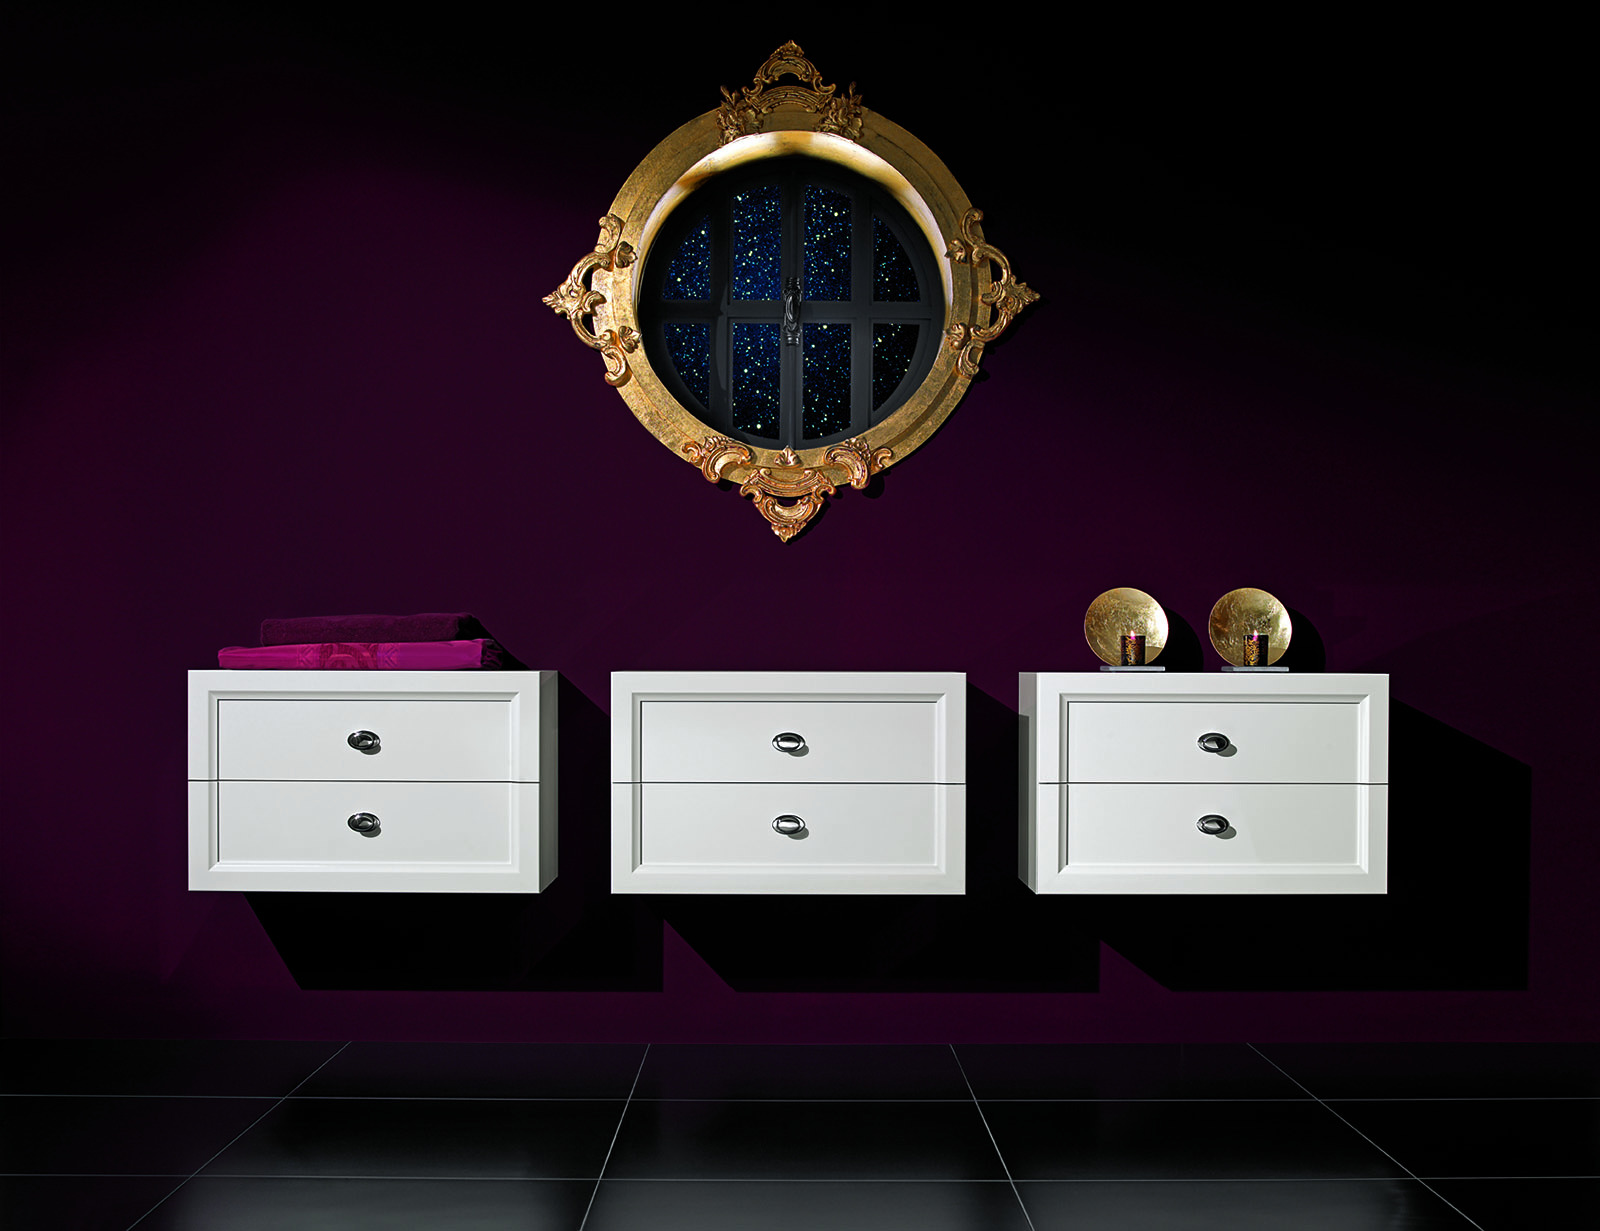 sivukaappi villeroy boch la belle a589 670x420x335 mm kiilt v valkoinen. Black Bedroom Furniture Sets. Home Design Ideas